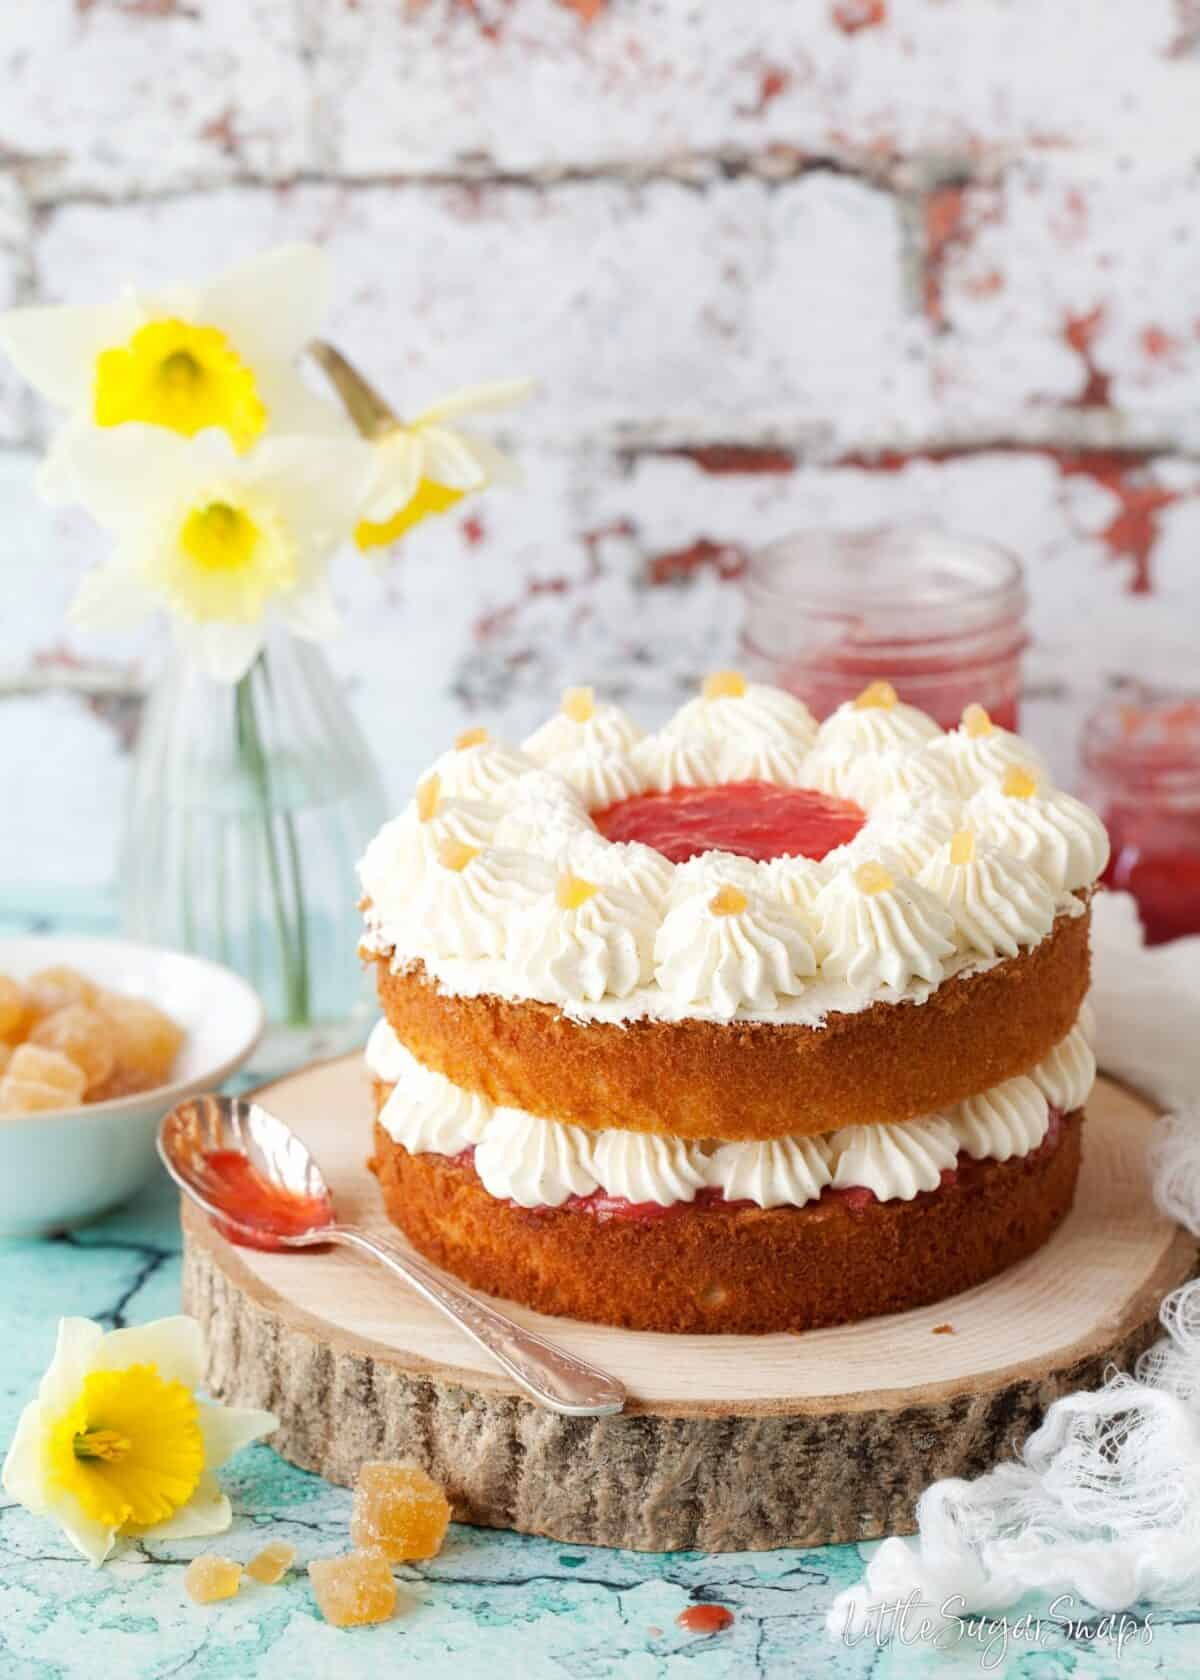 A vanilla sponge cake sandwiched with jam and whipped cream.